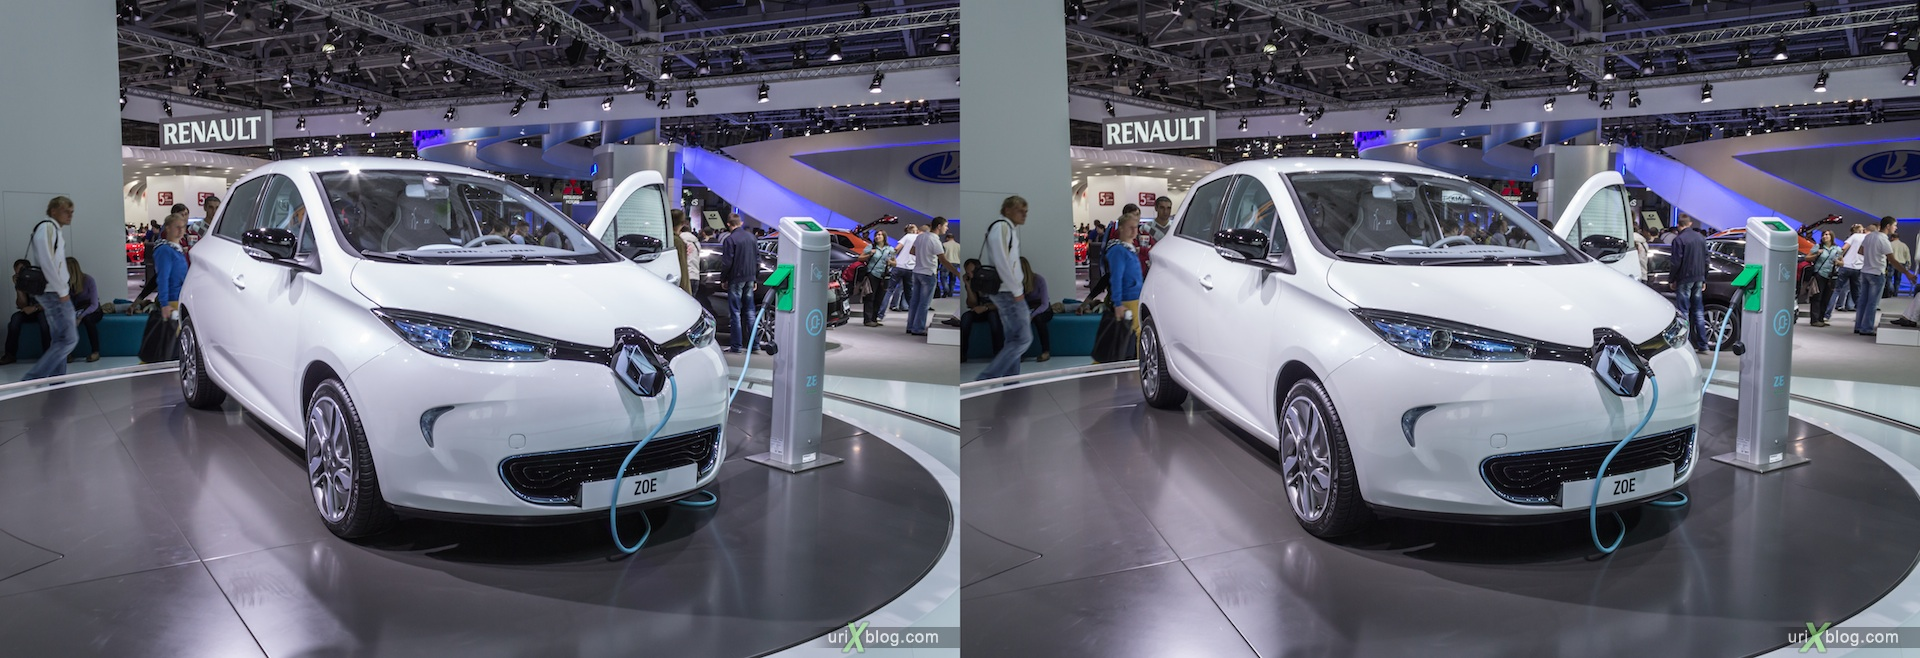 2012, Renault ZOE, Moscow International Automobile Salon, auto show, 3D, stereo pair, cross-eyed, crossview